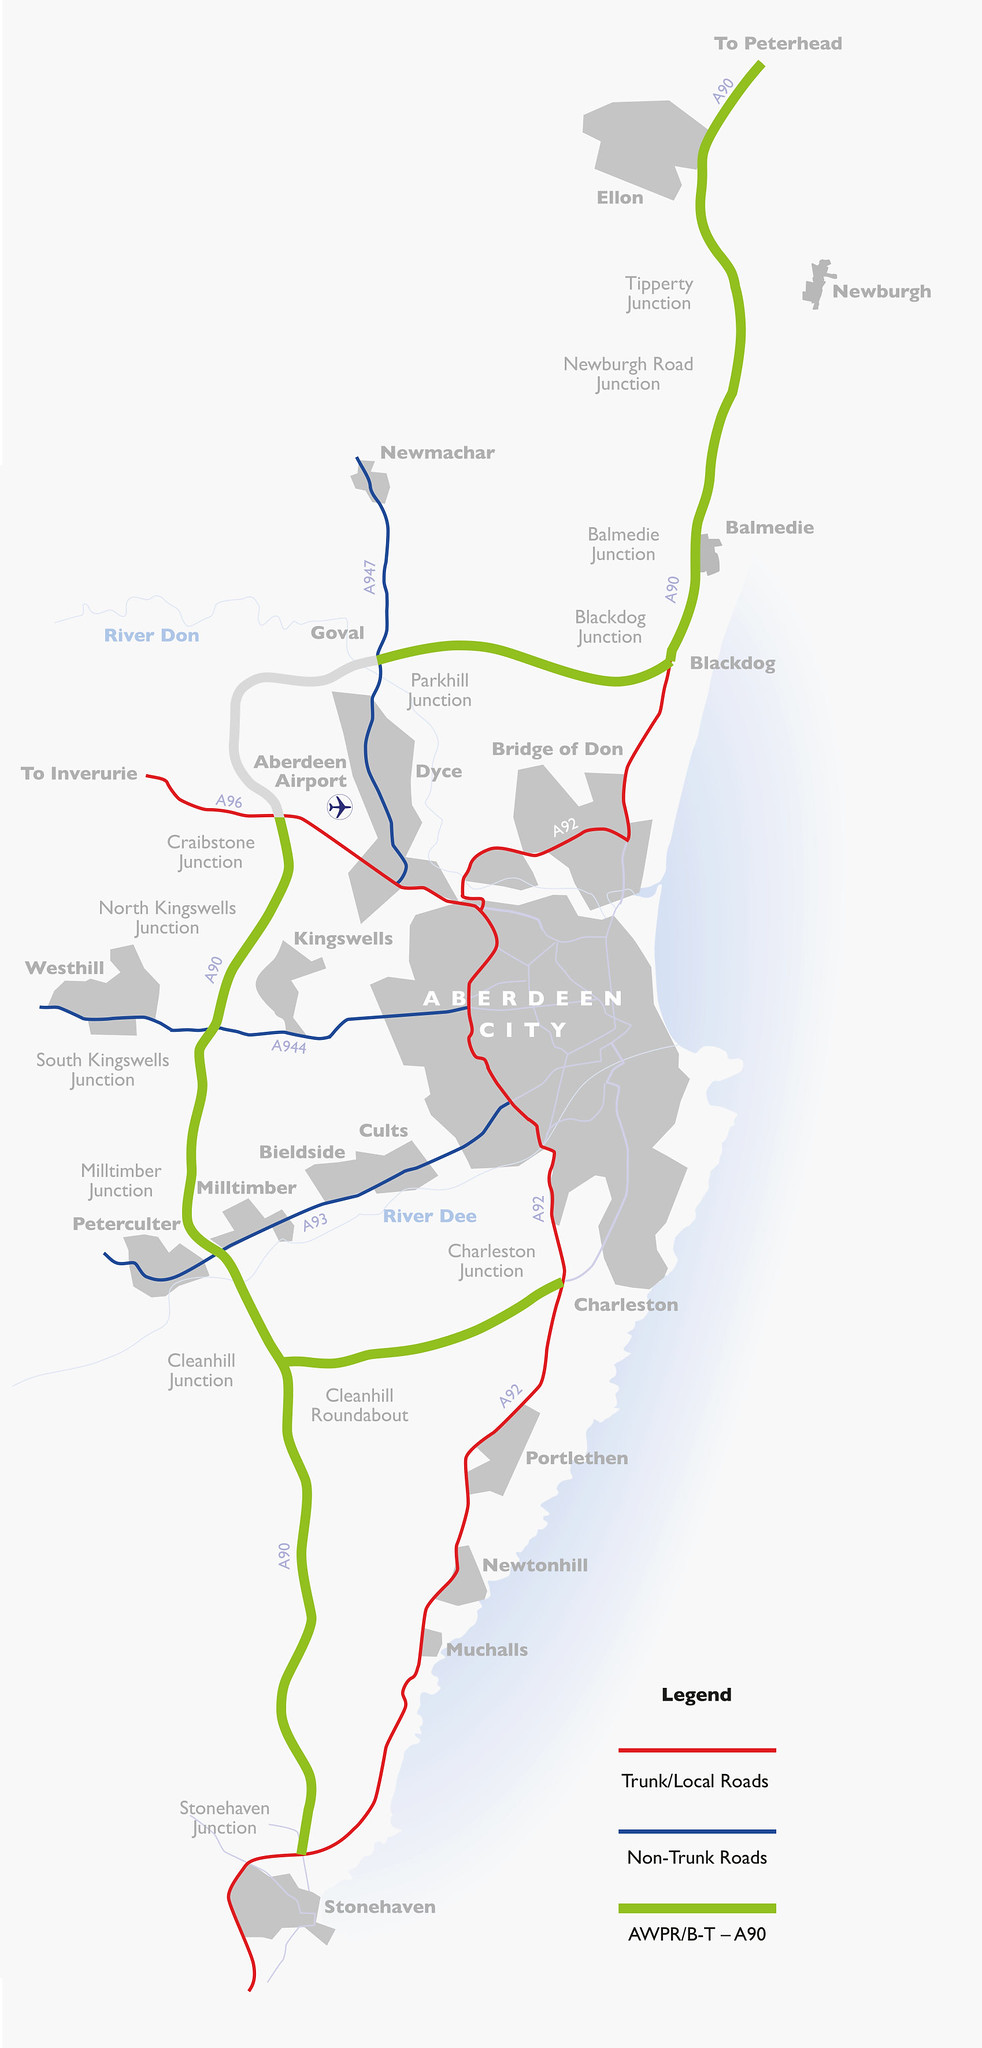 Awpr Route Map AWPR Opening (Part 1/3): New section to open Wednesday 12 December